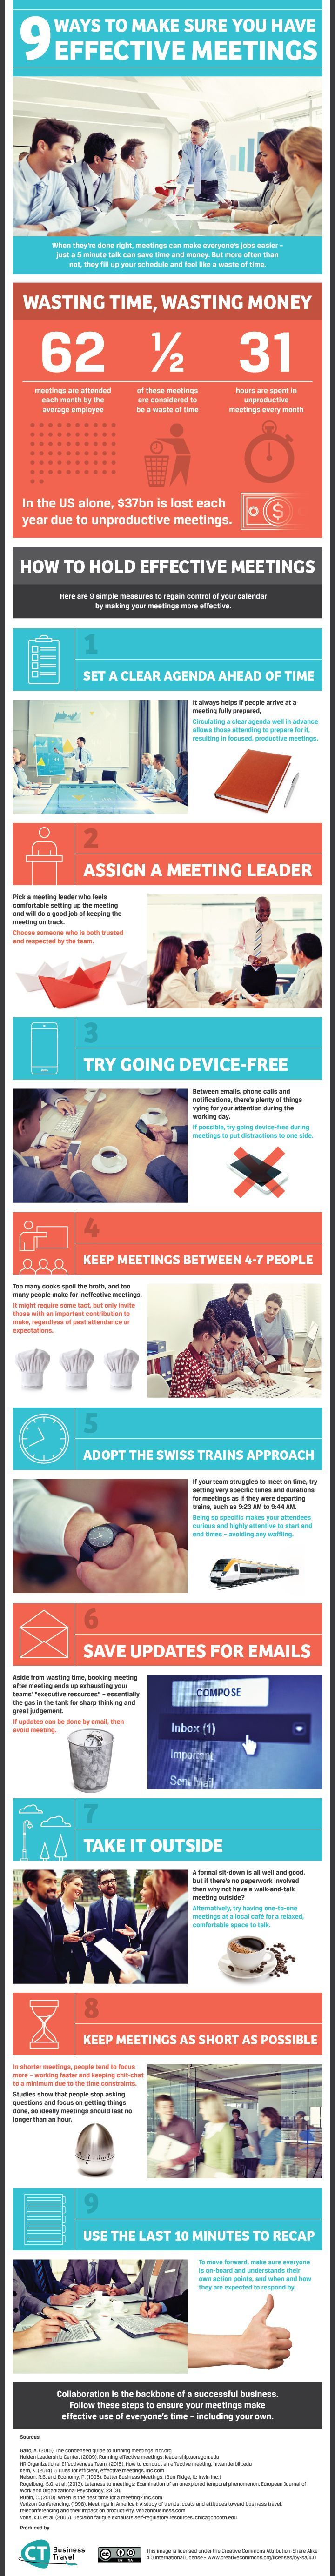 9 Ways to Make Sure You Have Effective Meetings #infographic #Meetings #Business